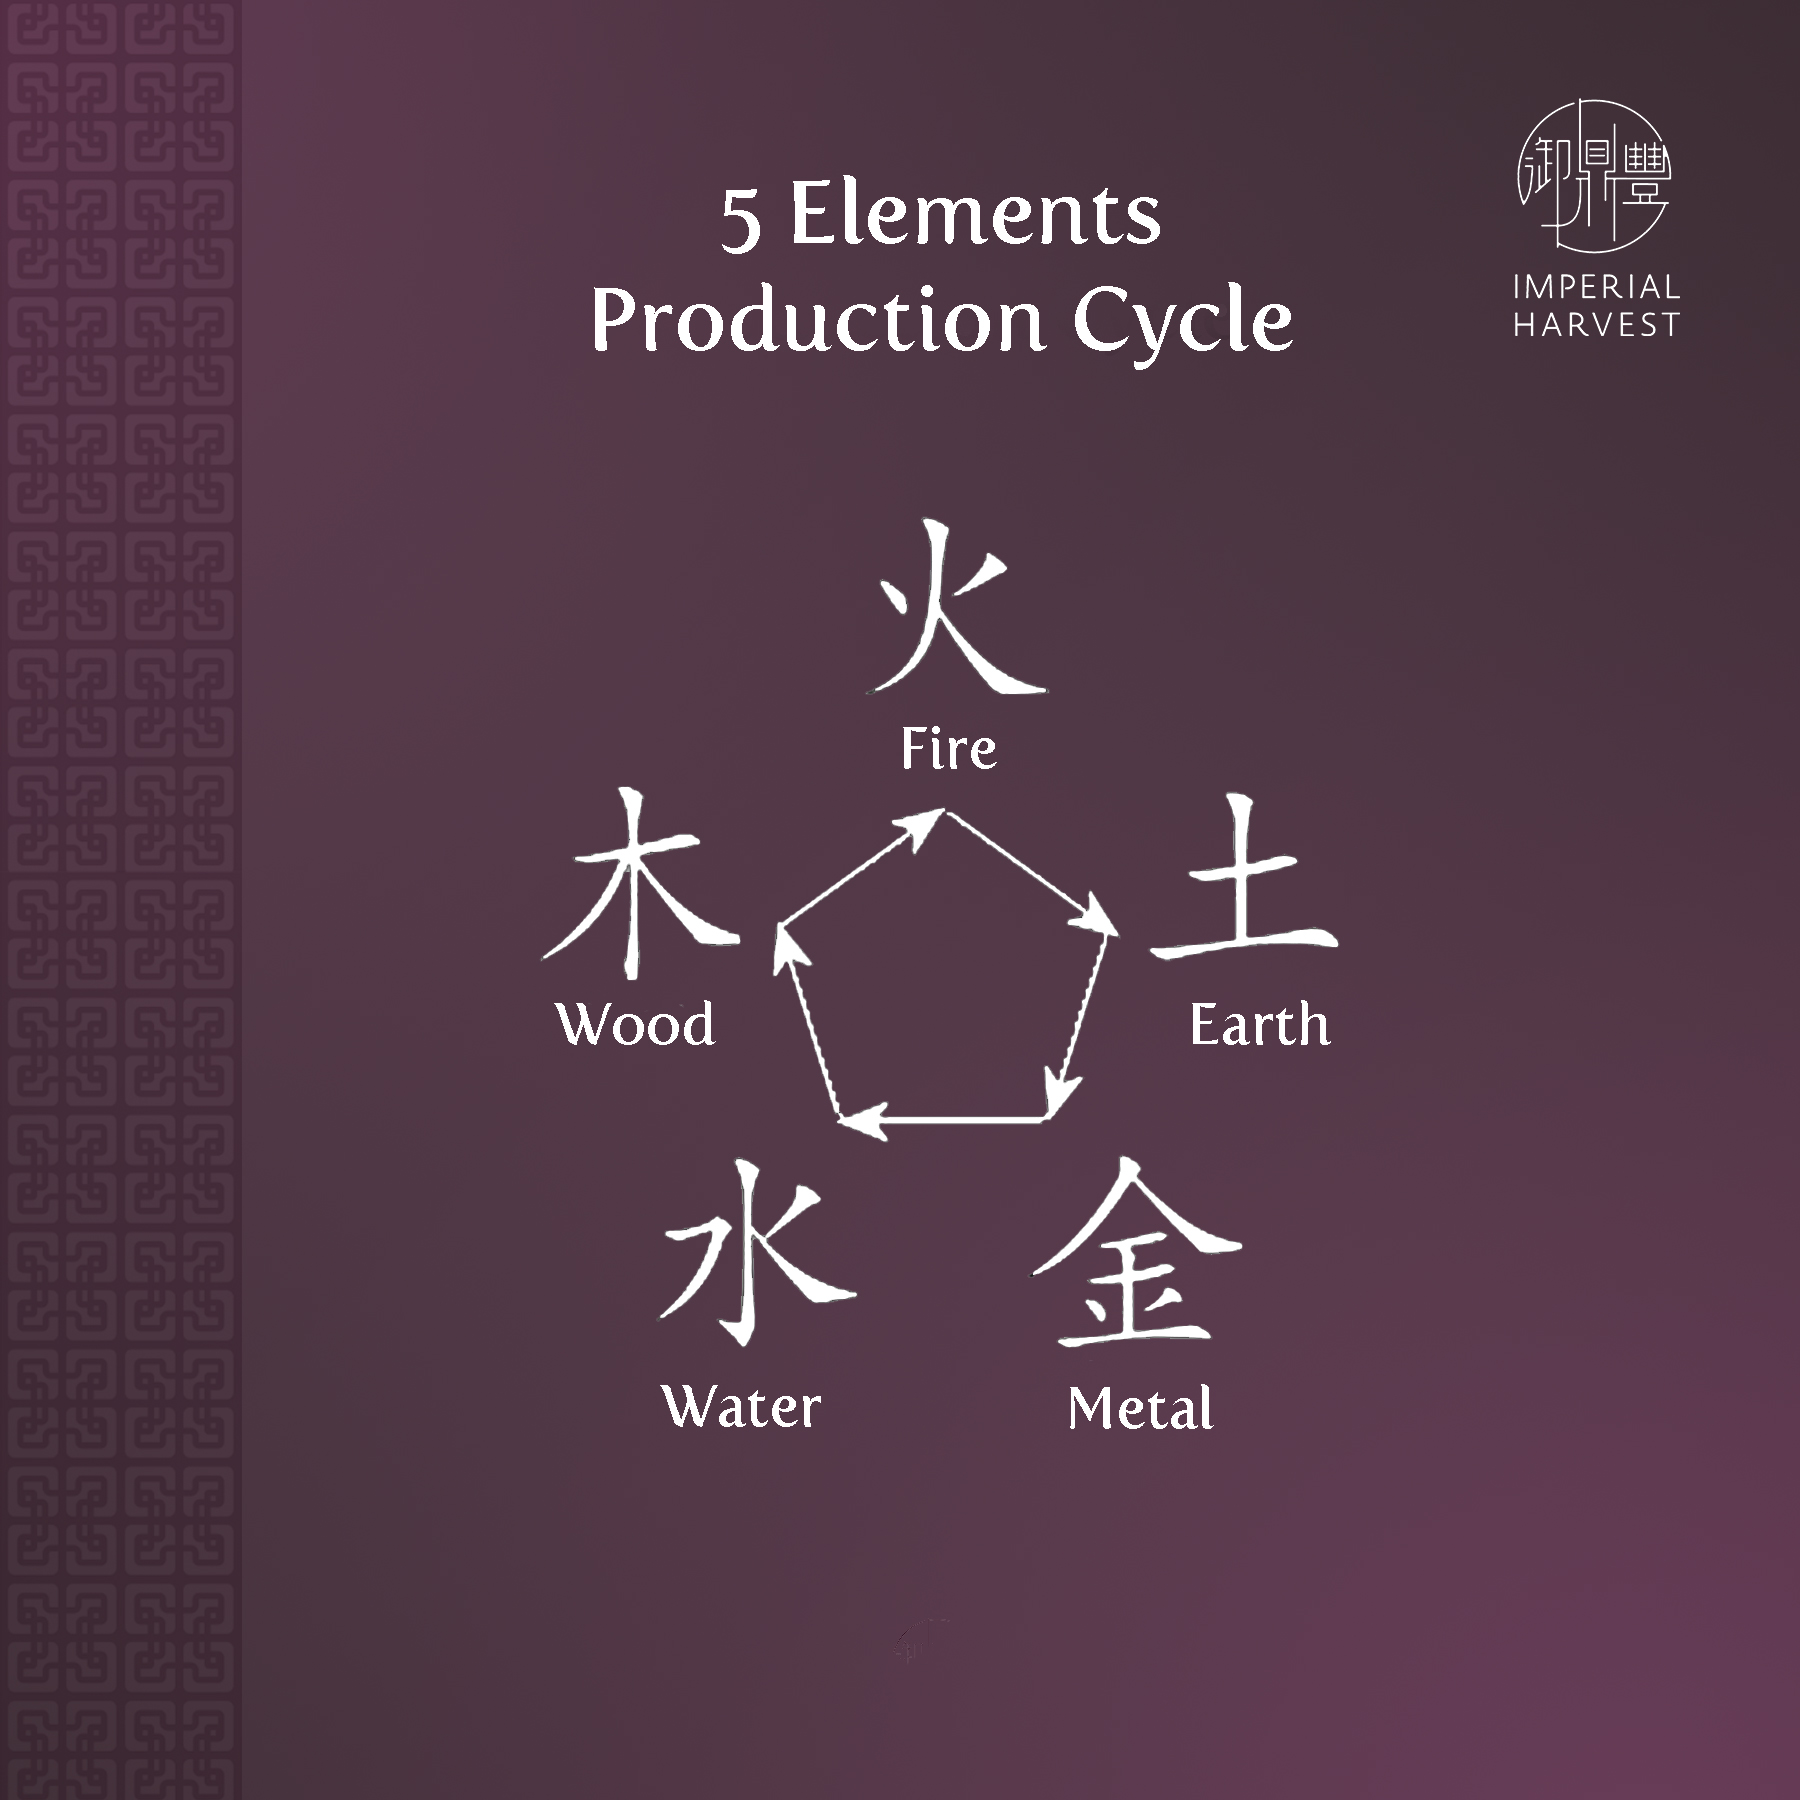 production_cycle_5element